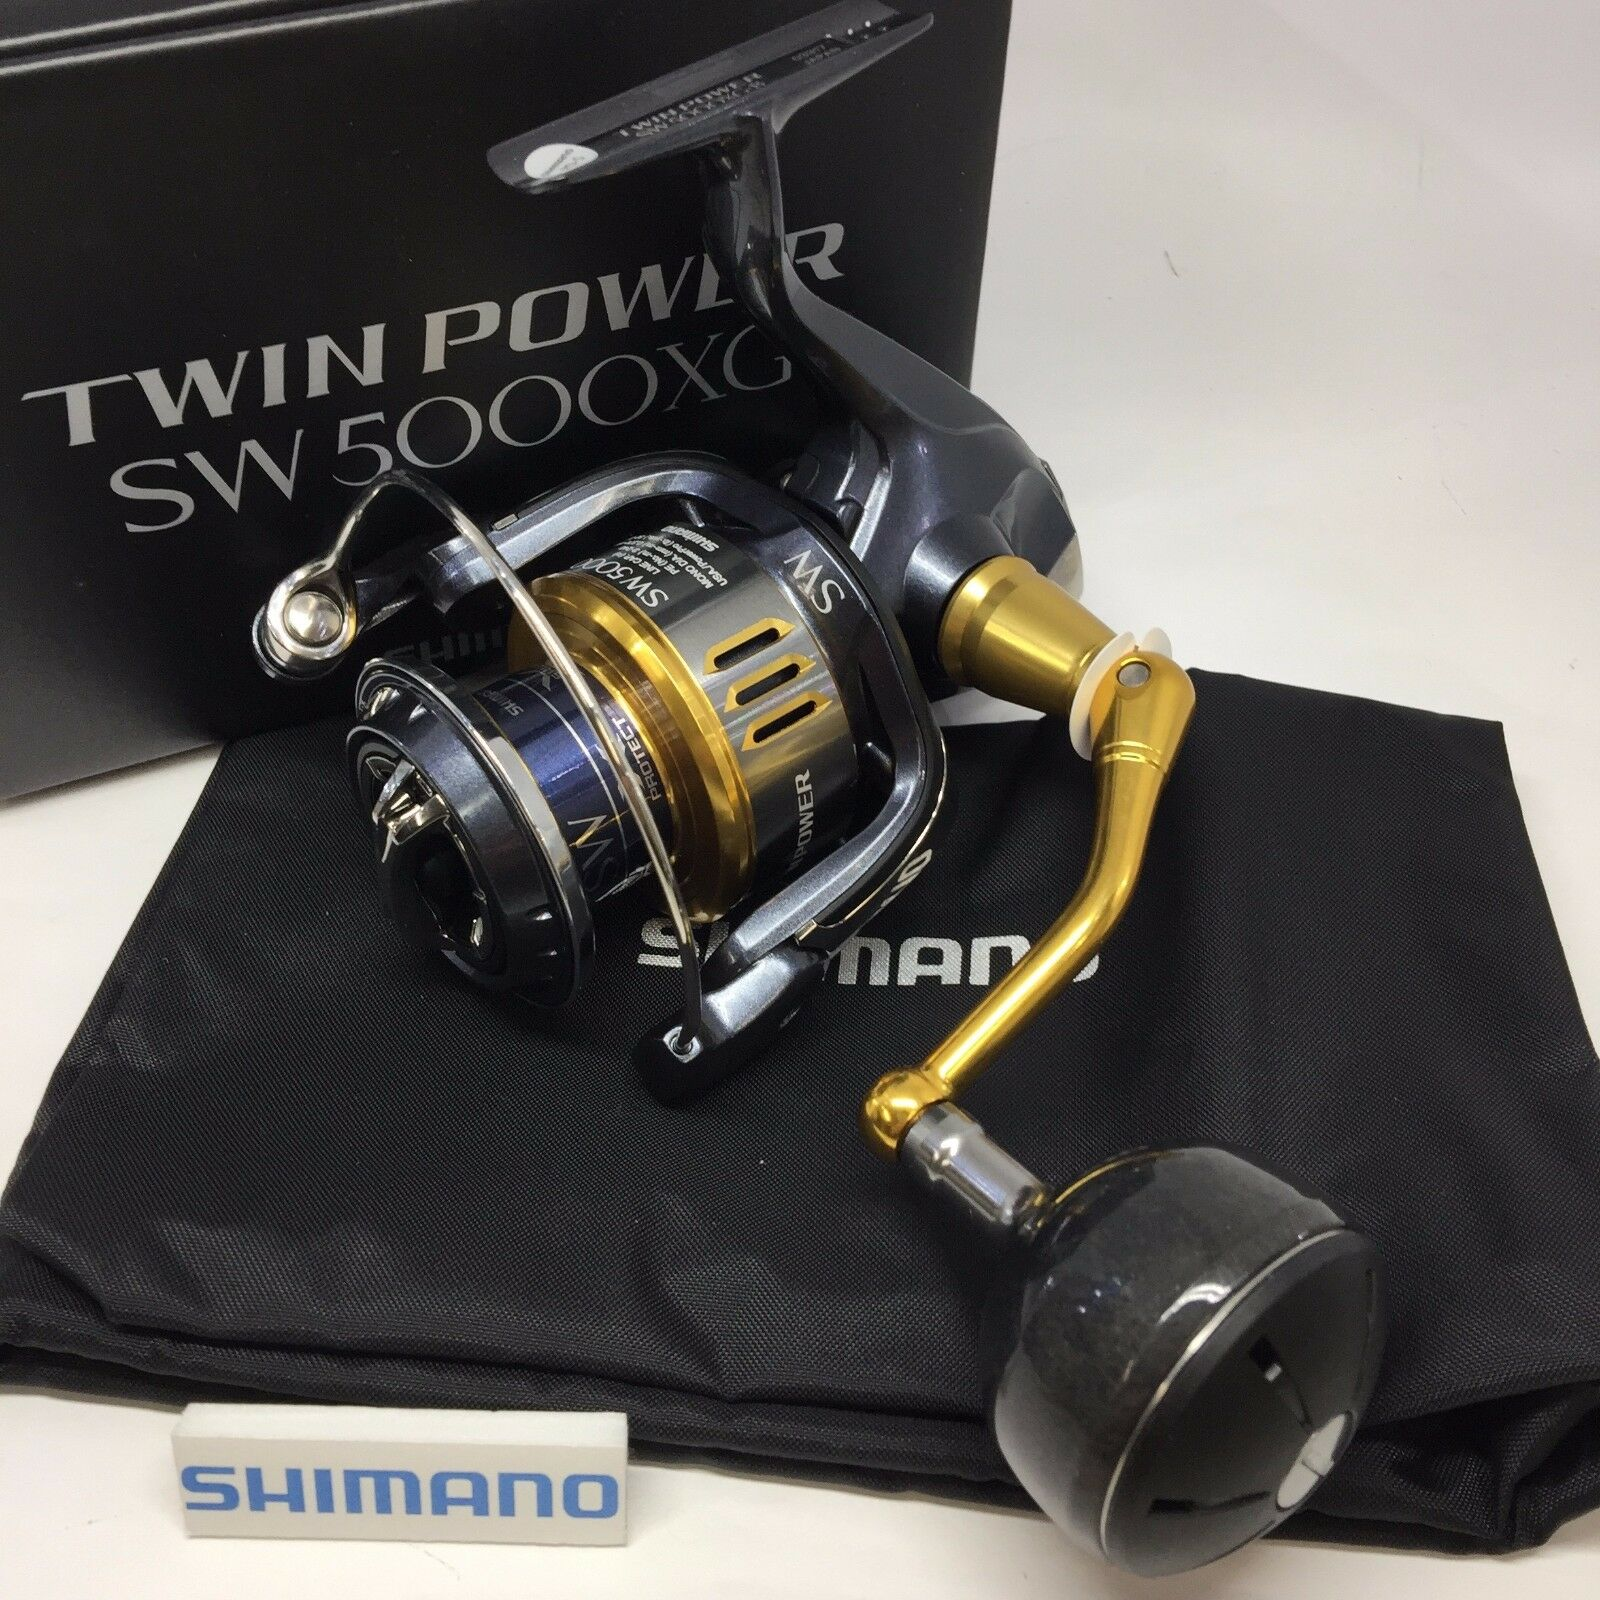 SHIMANO 15 TWINPOWER SW 5000XG   - Free Shipping from Japan